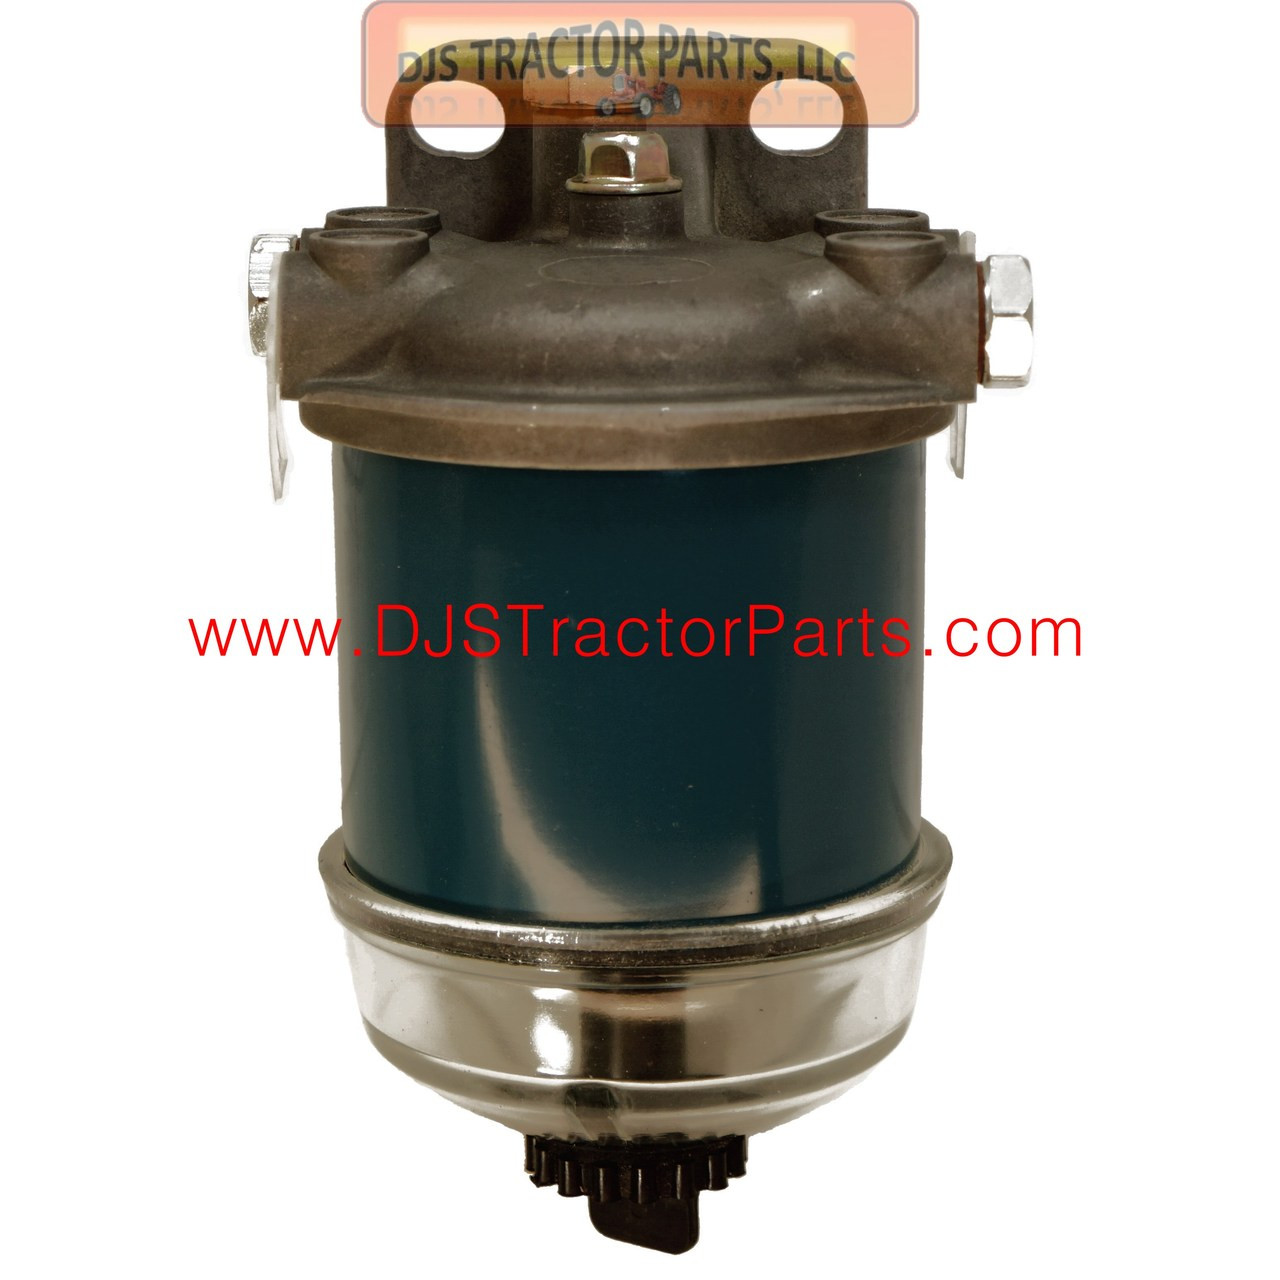 small resolution of diesel single fuel filter assembly with glass bowl ab 1423d djsdiesel single fuel filter assembly with